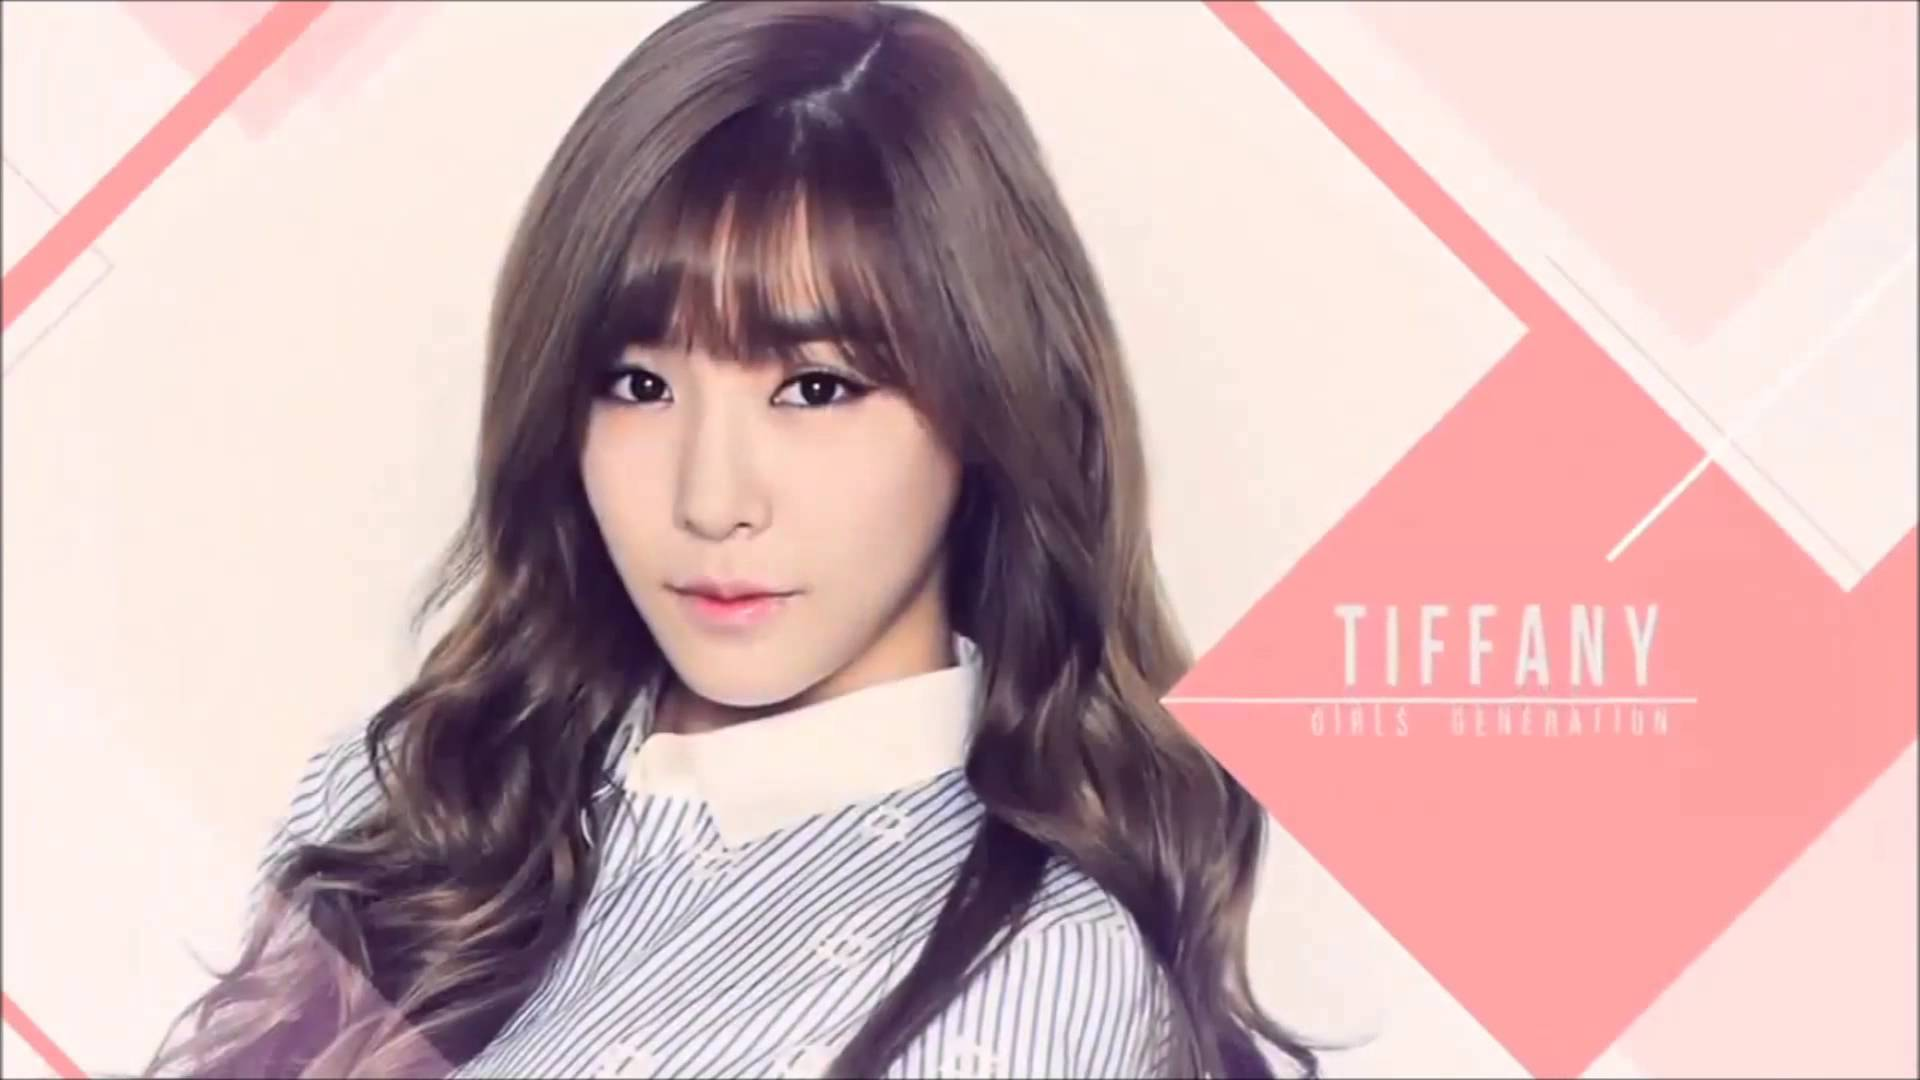 tiffany snsd profile